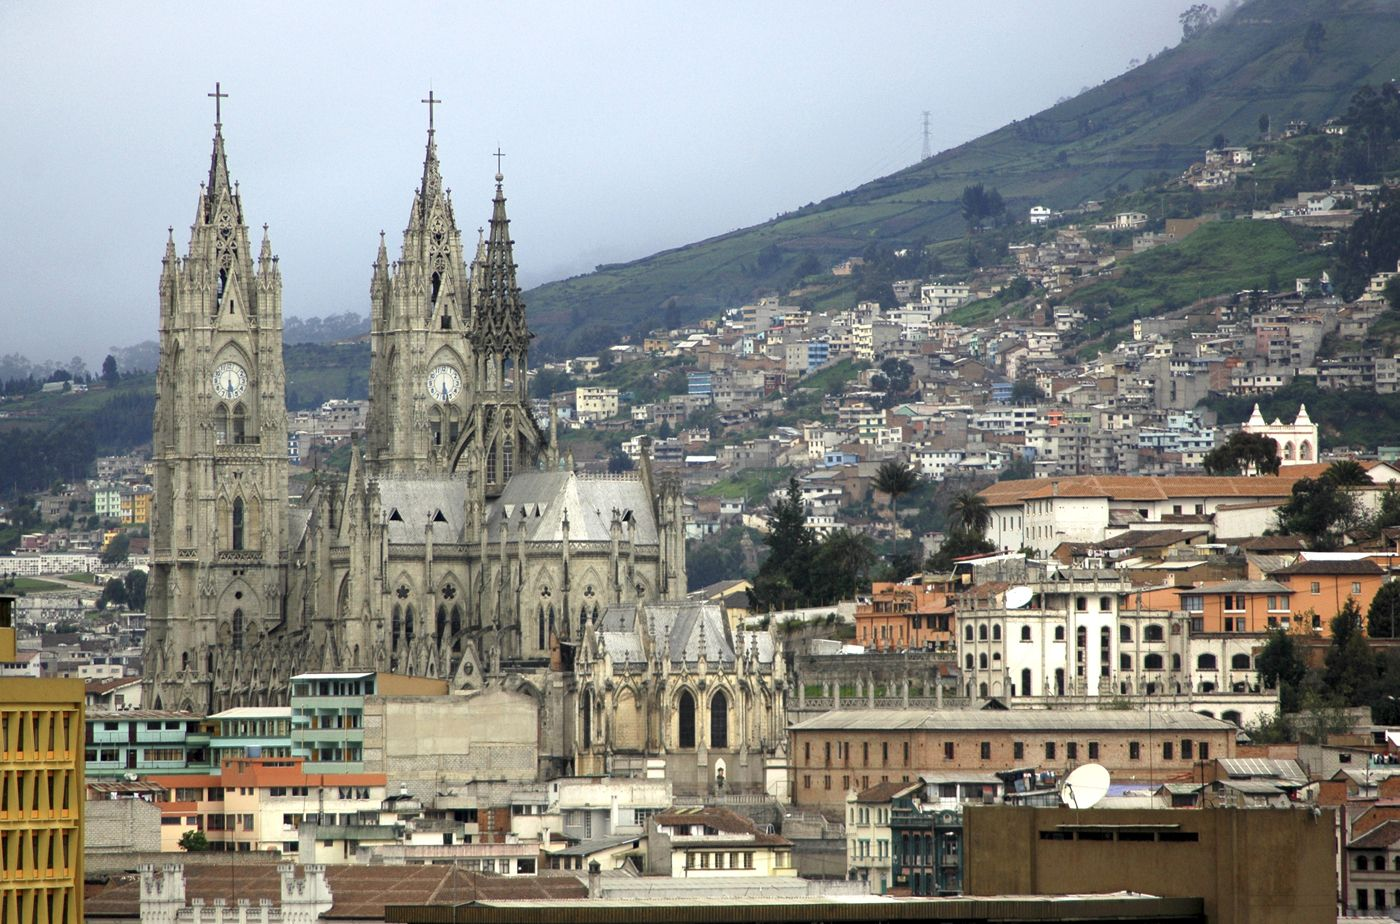 The Main Cathedral In Quito Called Basílica Del Voto Nacional - 12 cant miss sites in quito ecuador